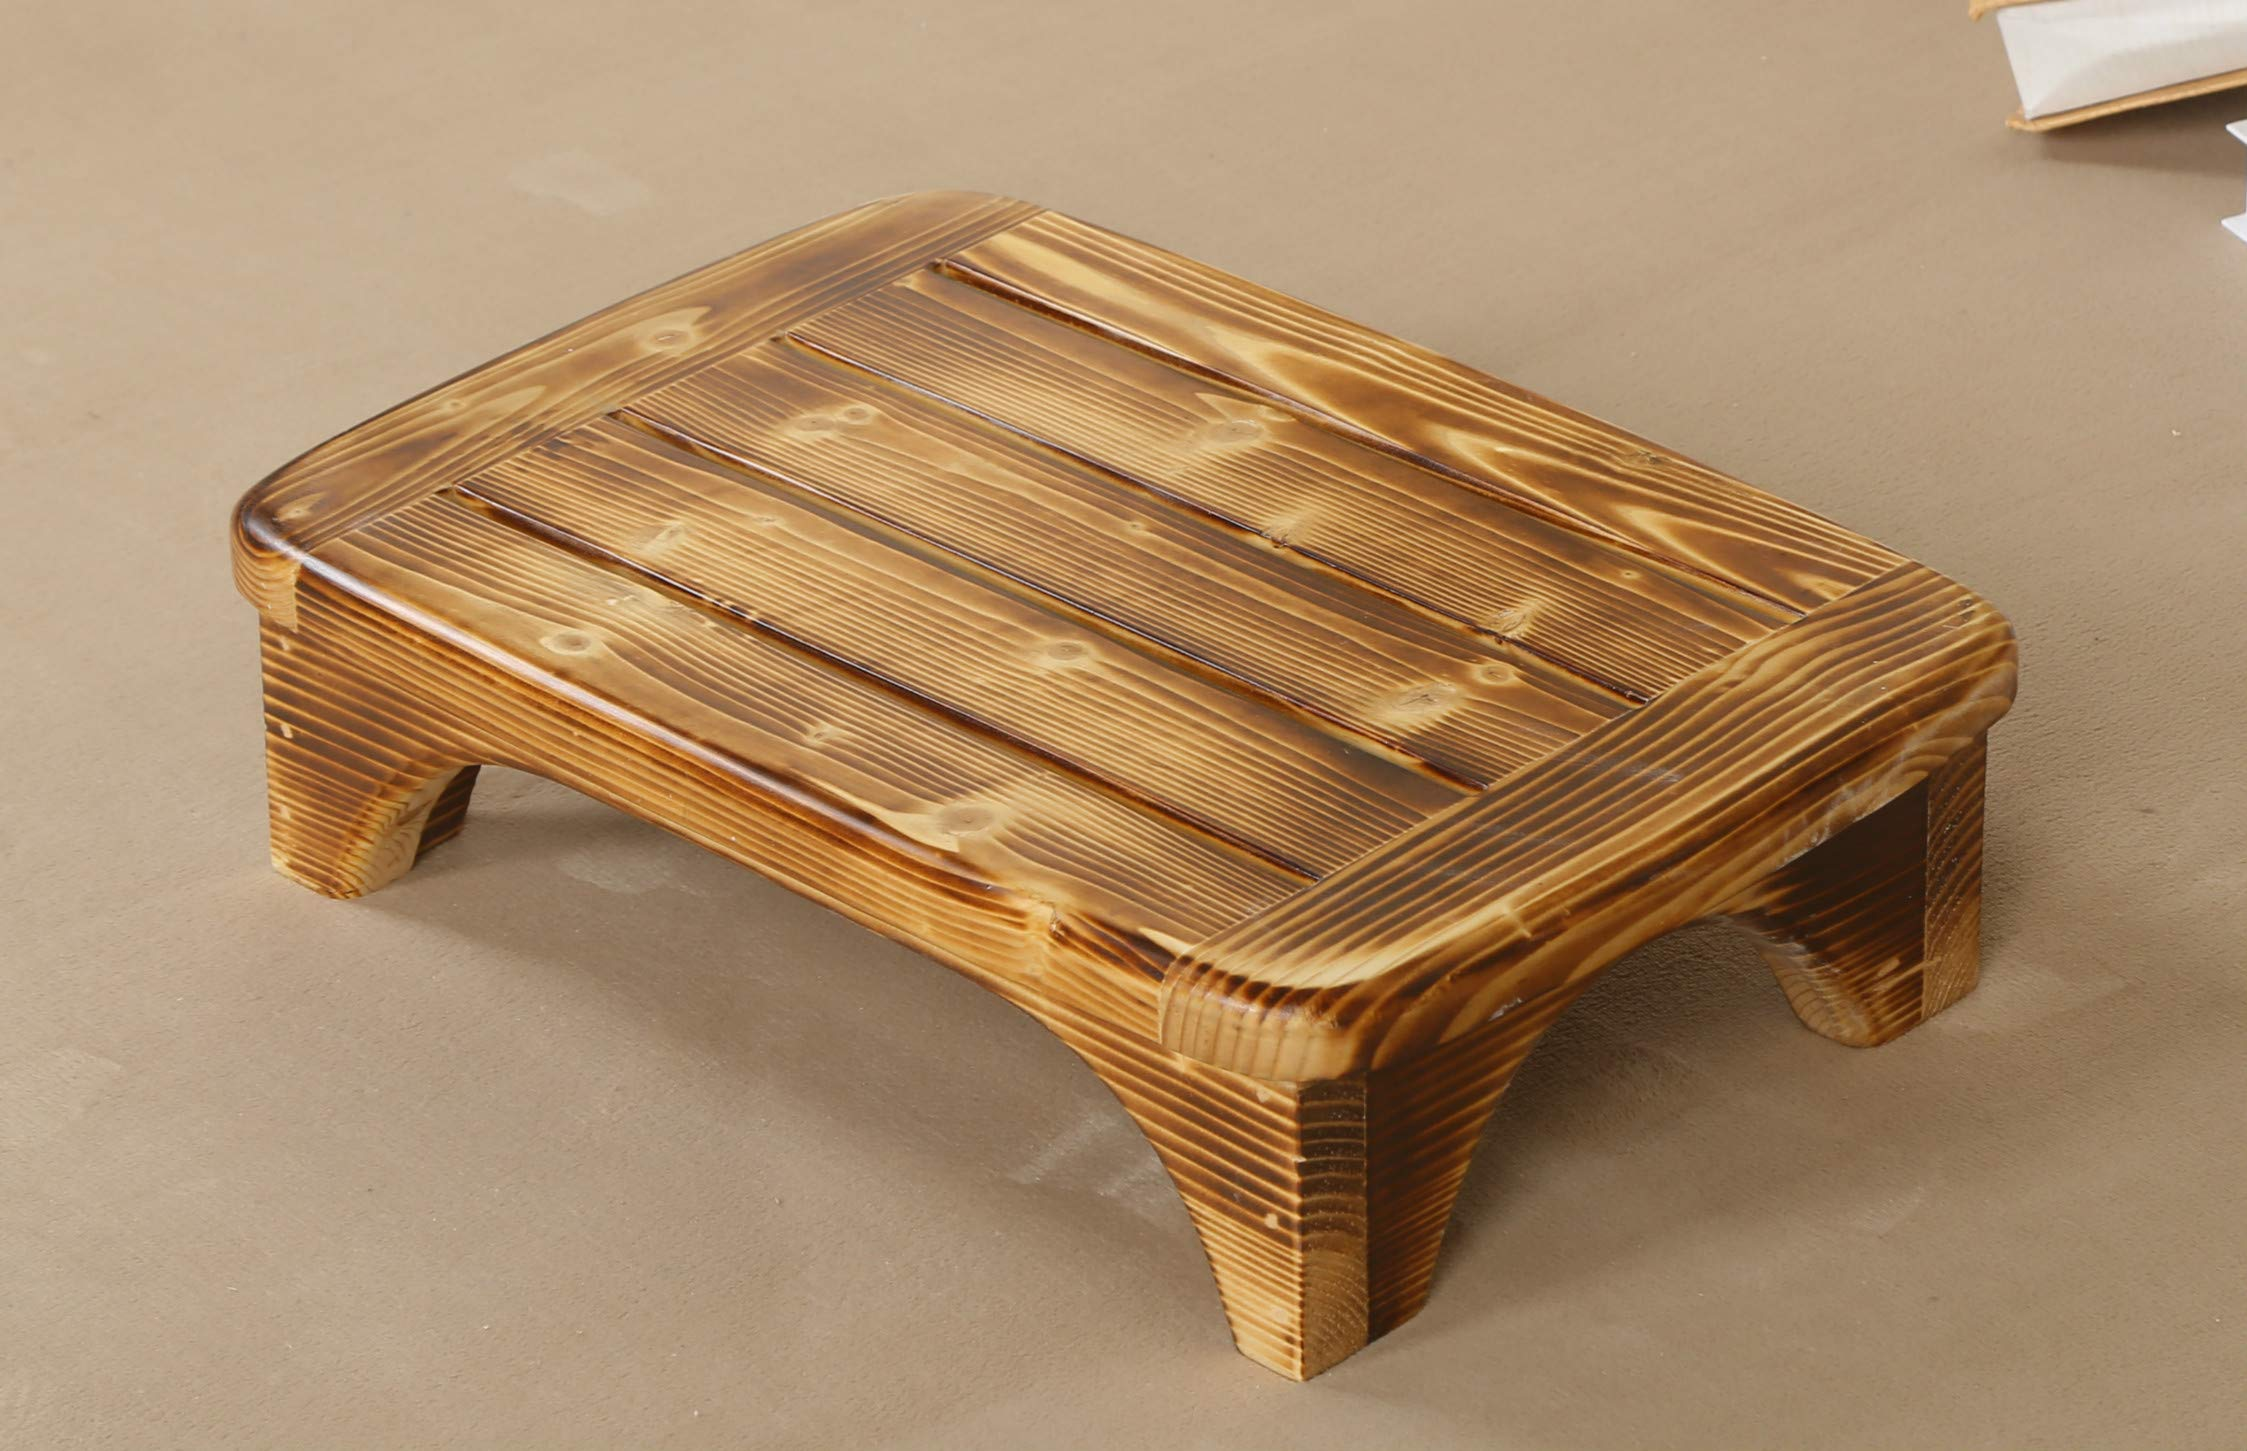 Welcare Burned-Handcrafted 100% Solid Wood Step Stool-Foot Stool Kitchen Stools Bed Steps small step ladder Bathroom Stools by URFORESTIC